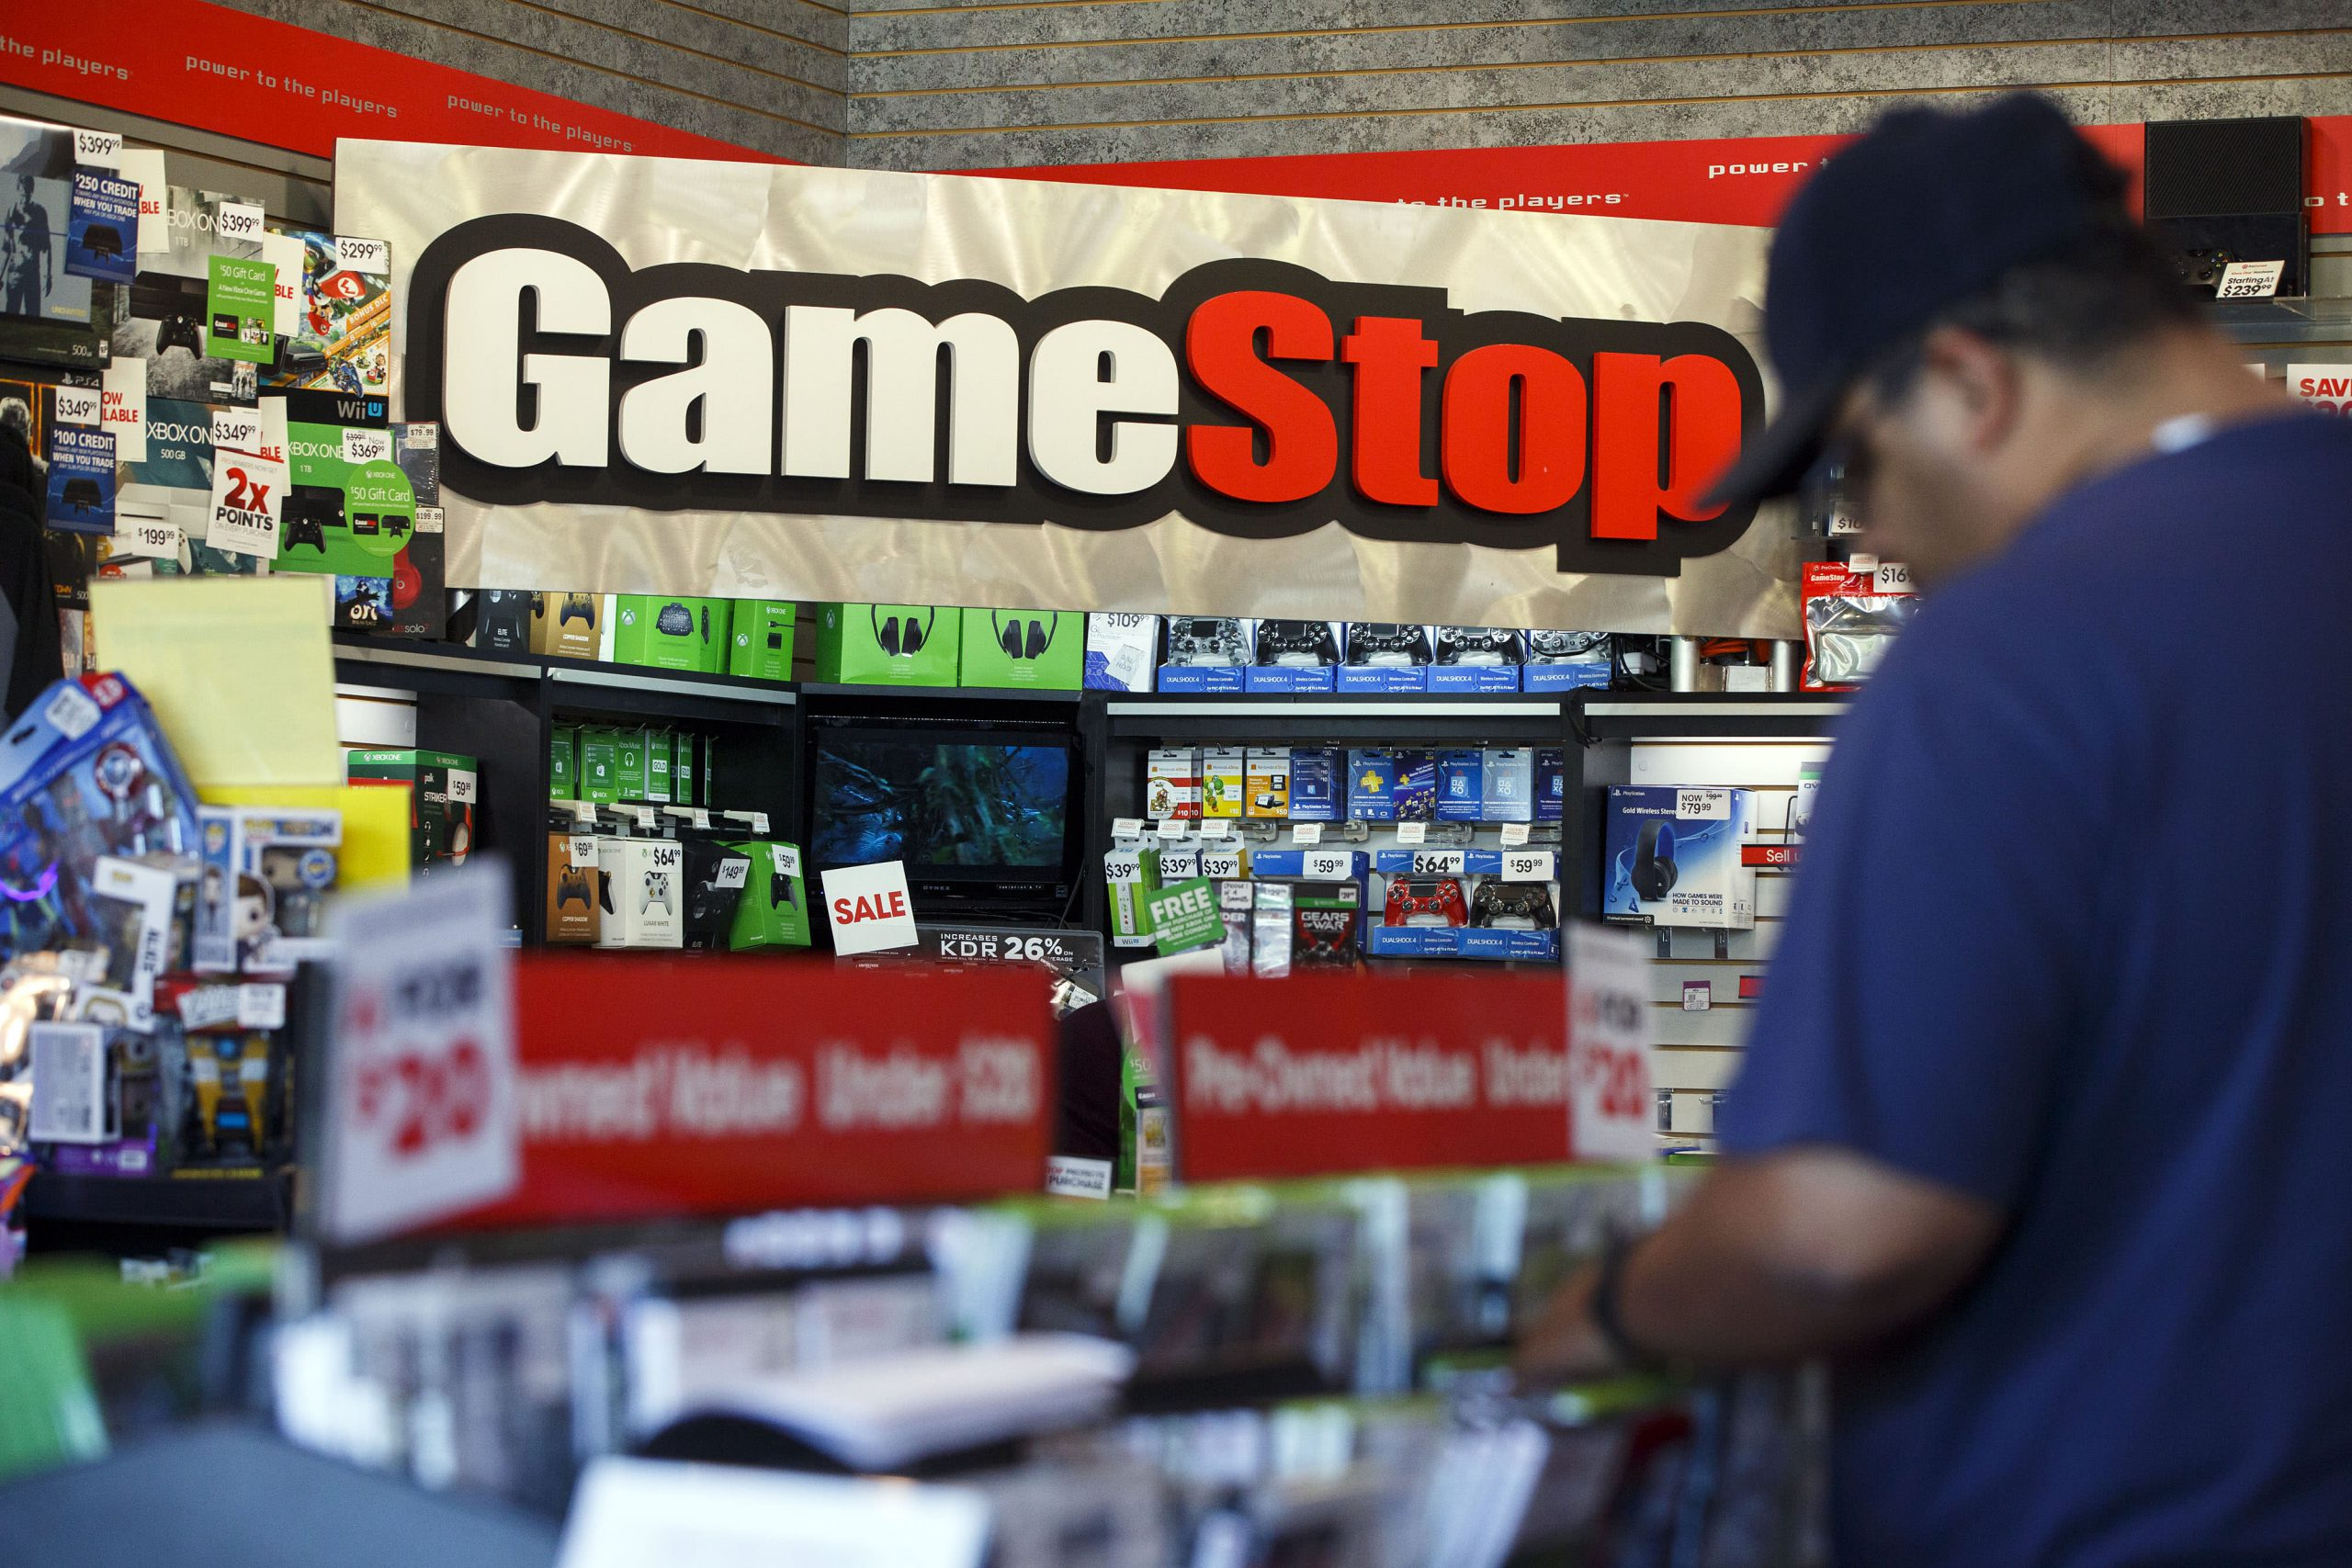 Stocks making the biggest moves after hours: GameStop, Lululemon, KB Home and more